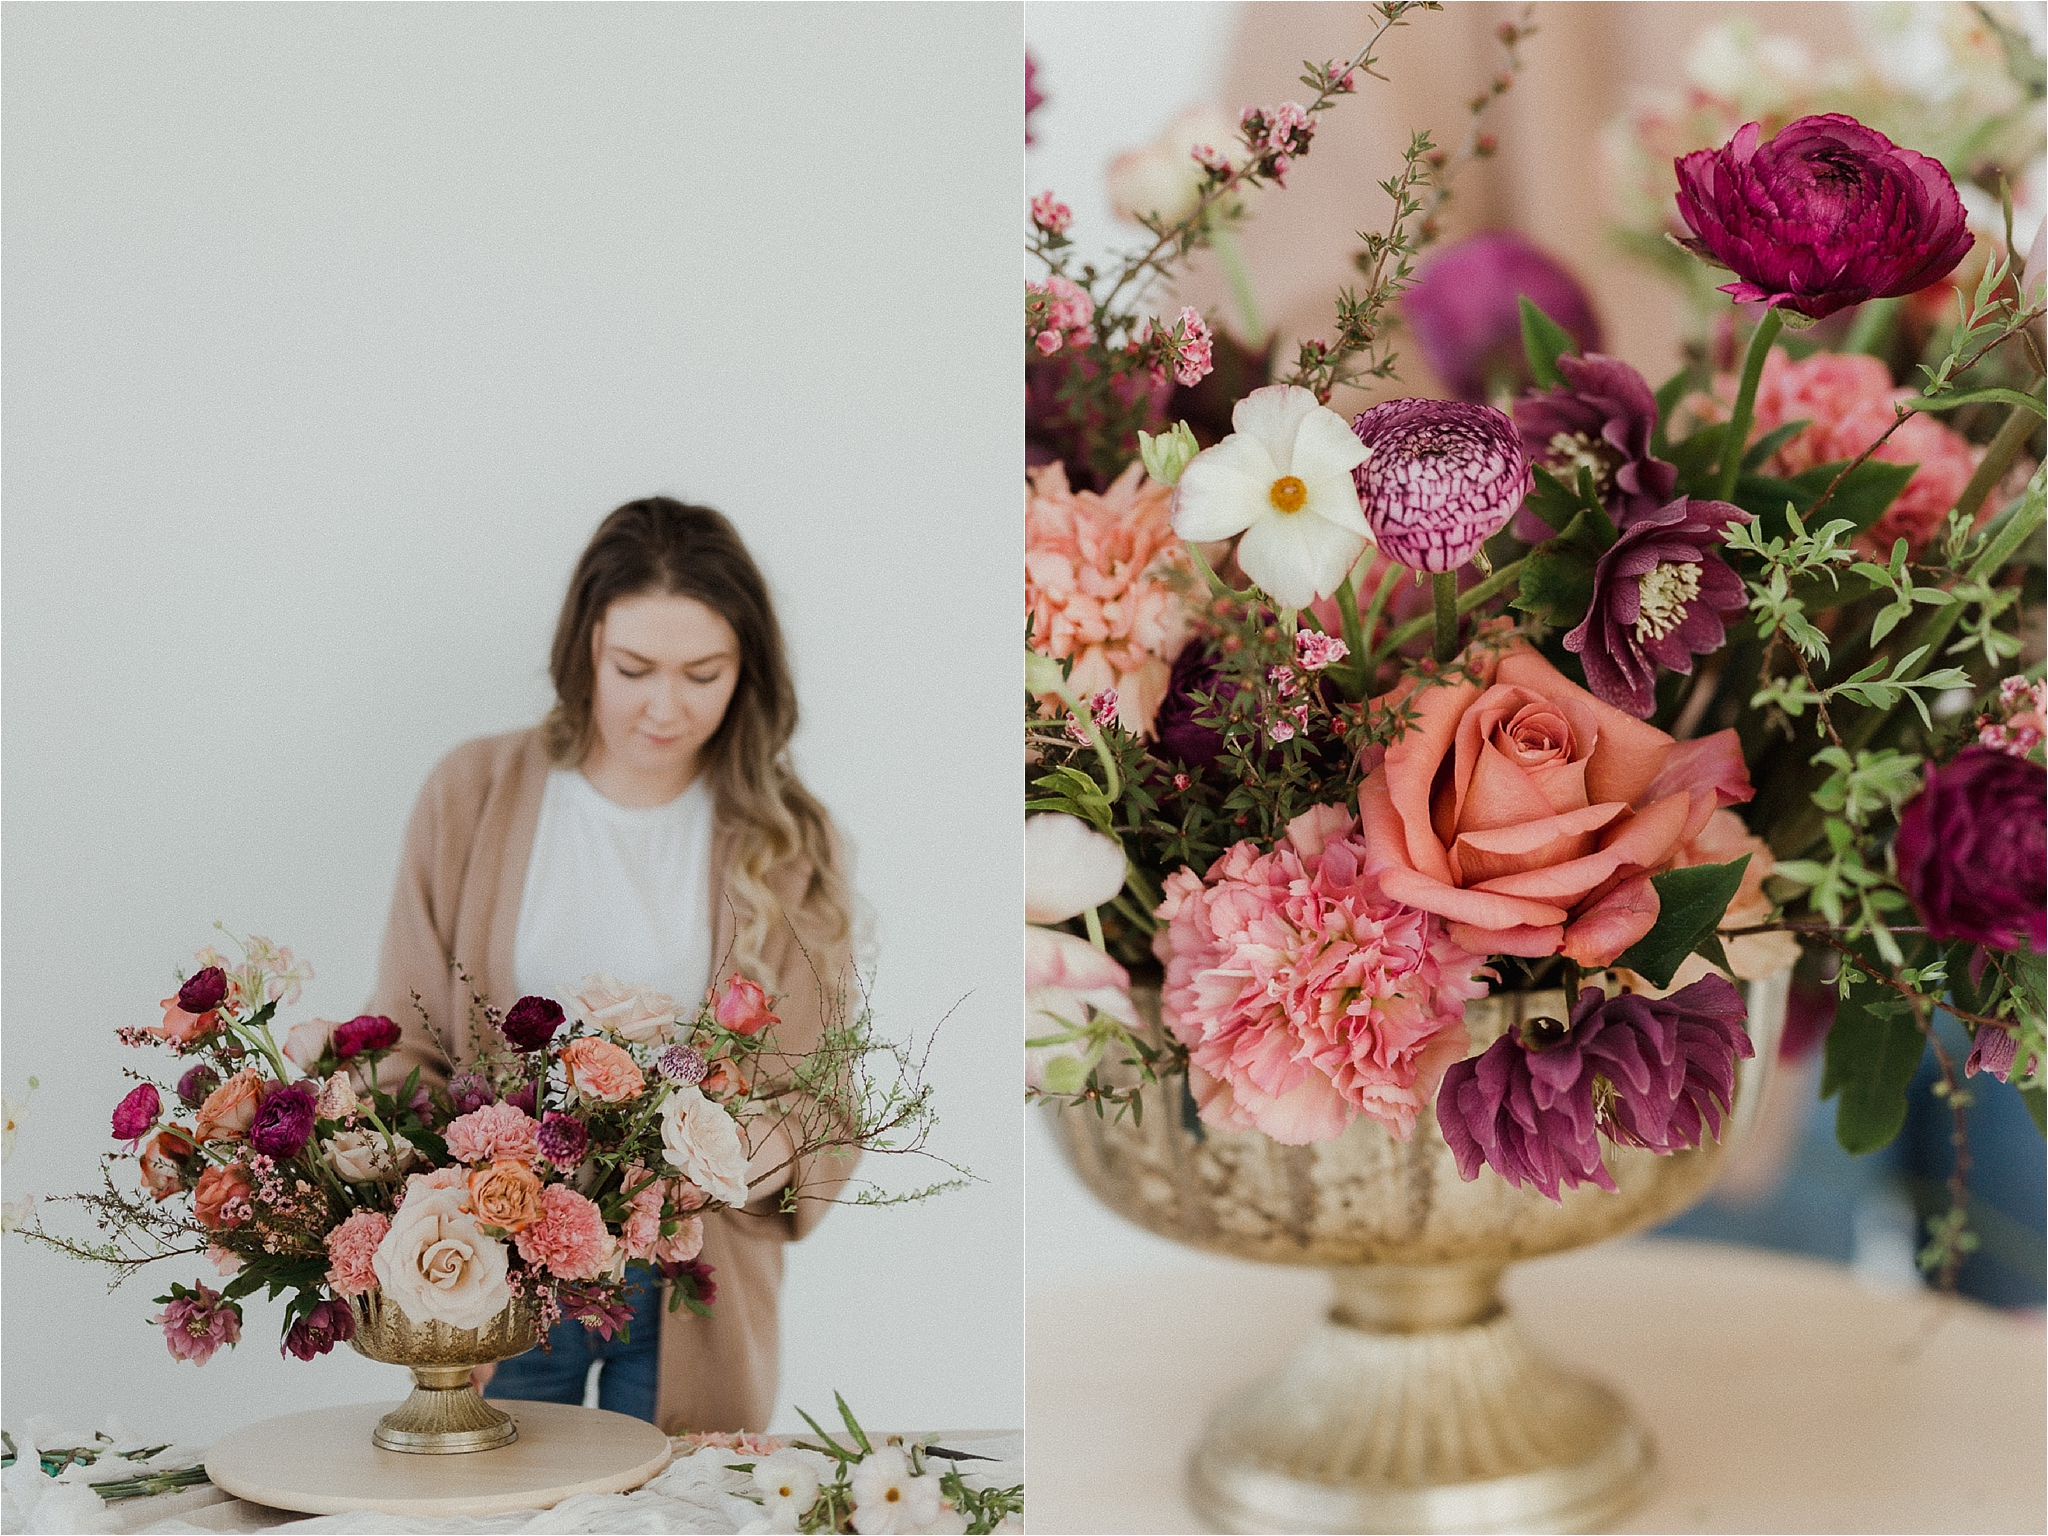 Creative small business branding photography AM florals florist creating arrangement in white photography studio